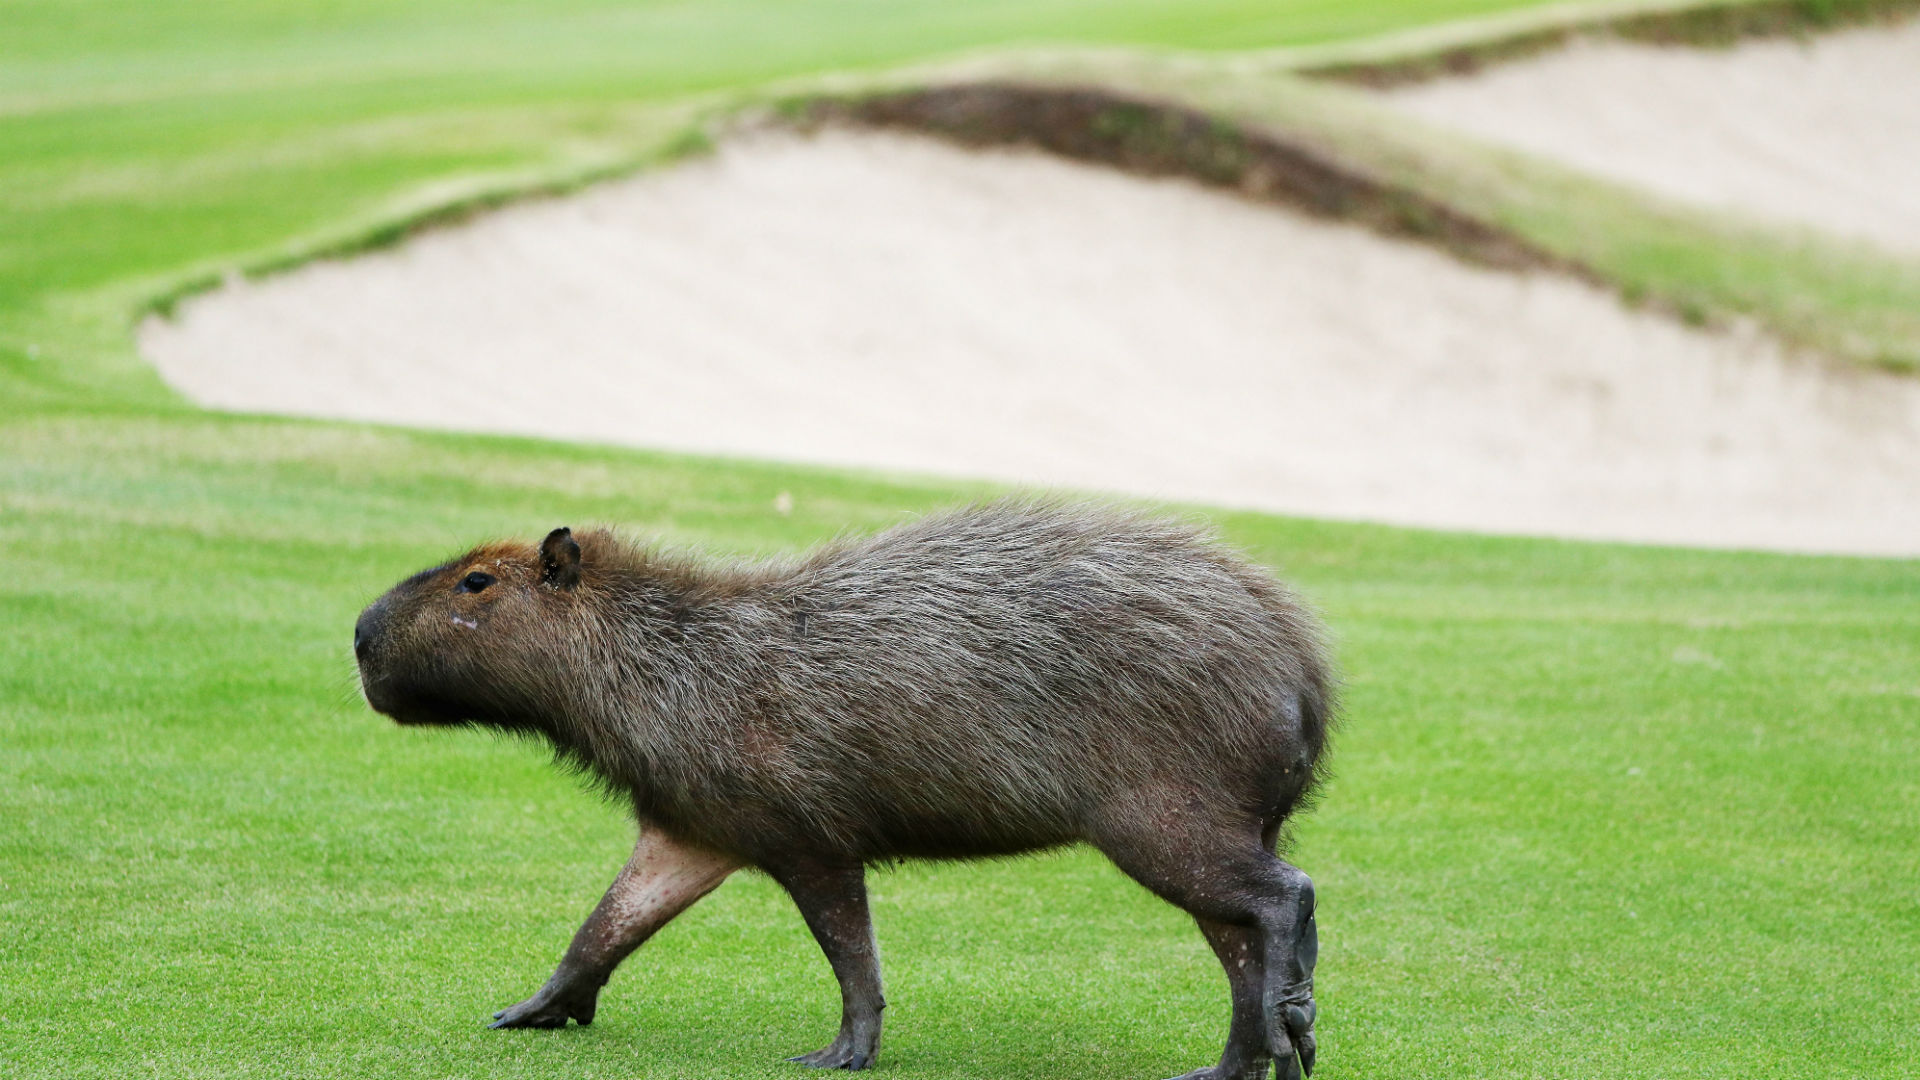 Olympic notebook: Birdies, pars and giant capybara rodents ...